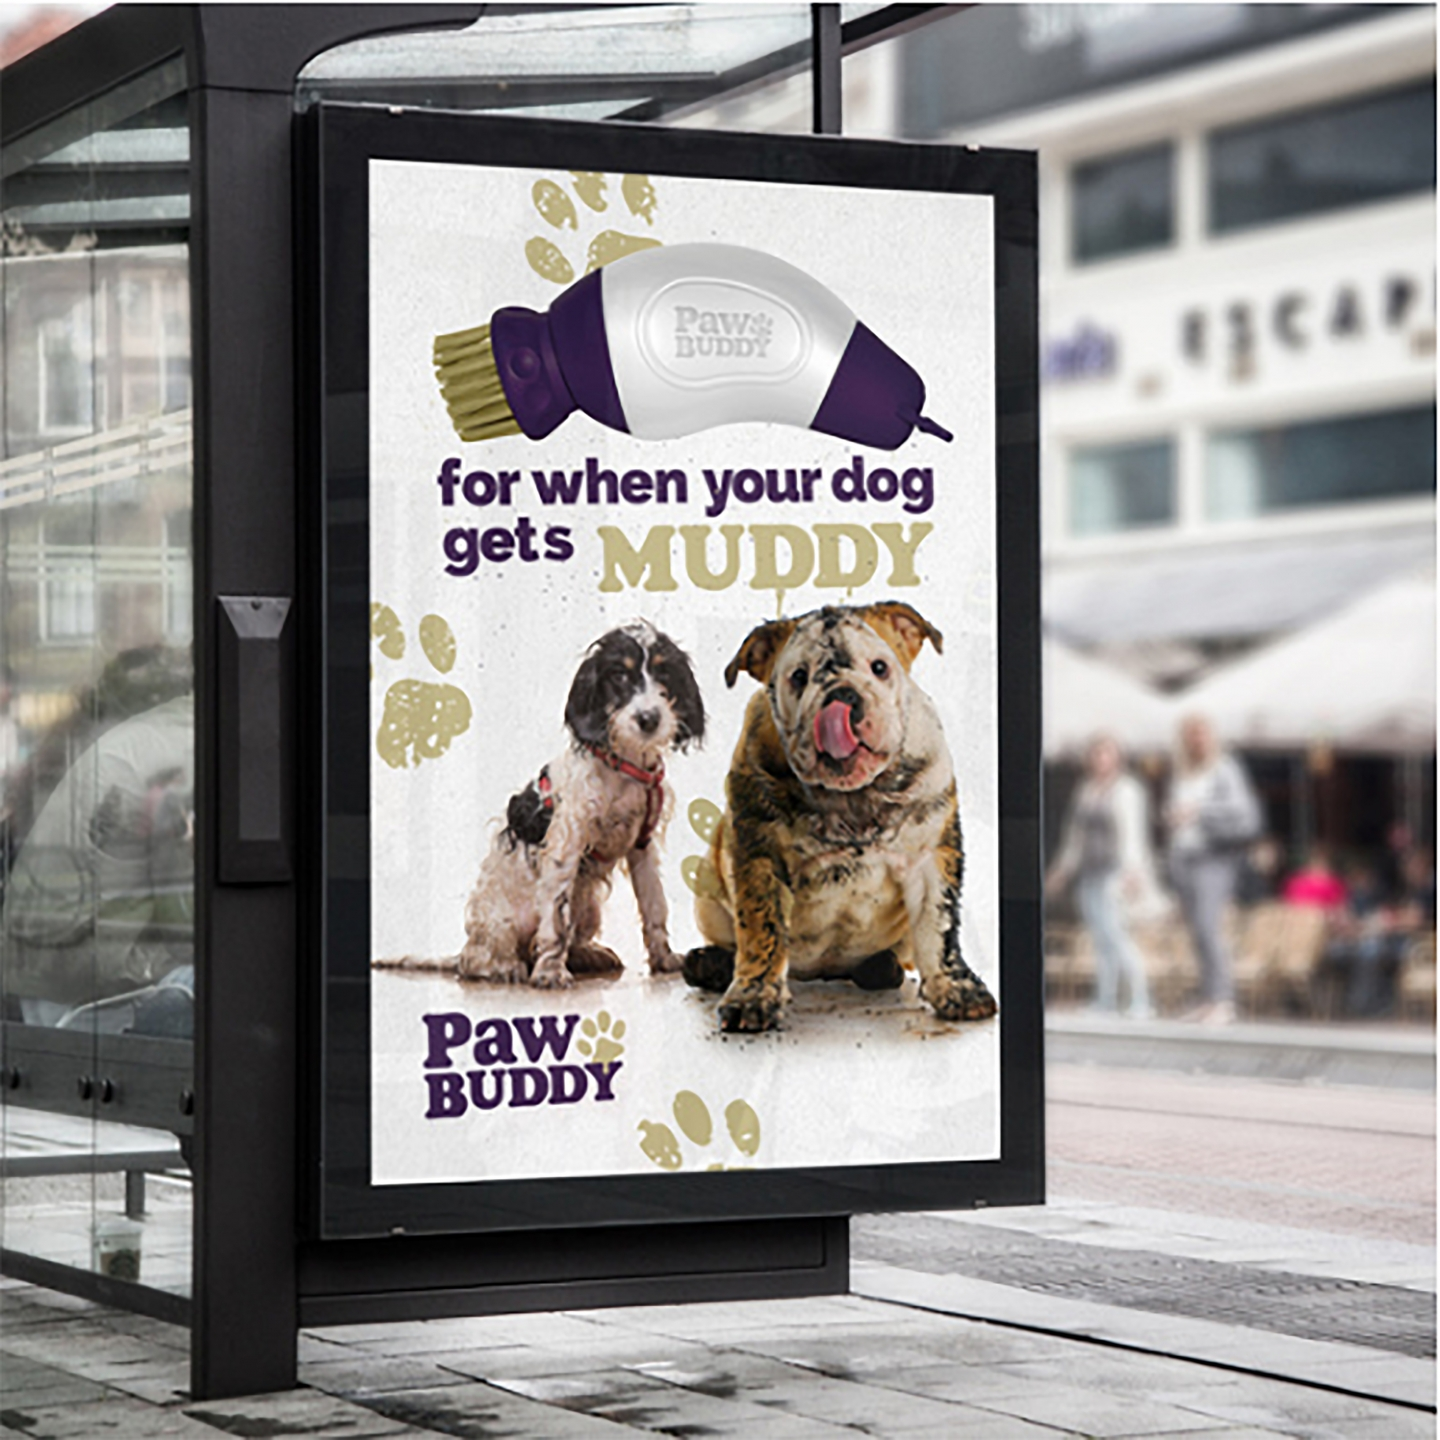 Paw Buddy large format bus stop advertisement